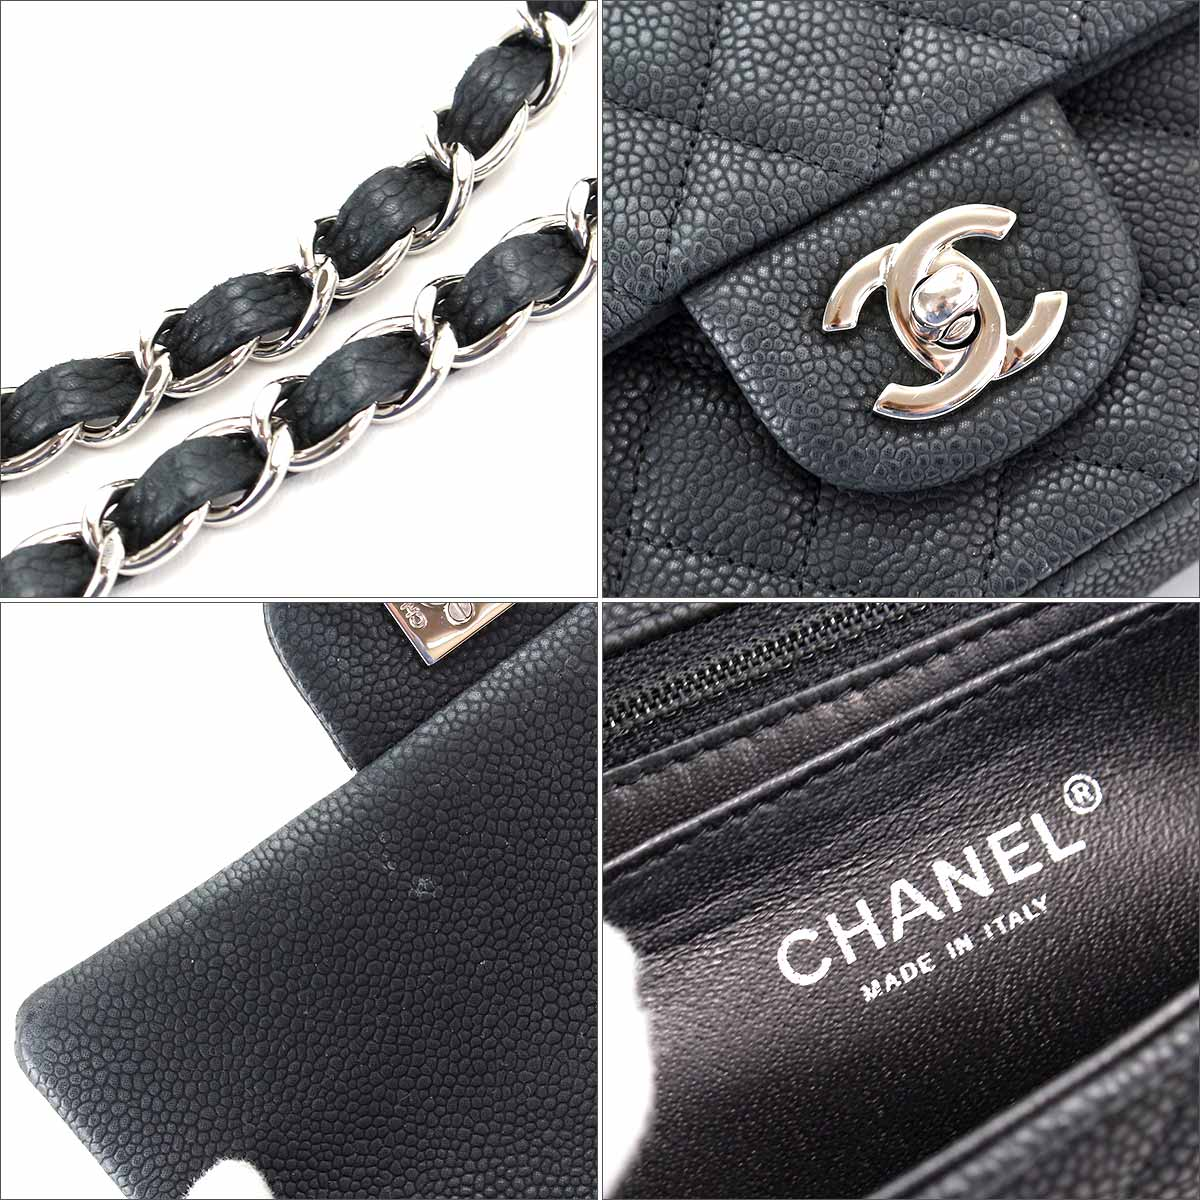 98fd5339123a ... Chanel CHANEL mini-matelasse 20 chains shoulder bag caviar skin black  A69900